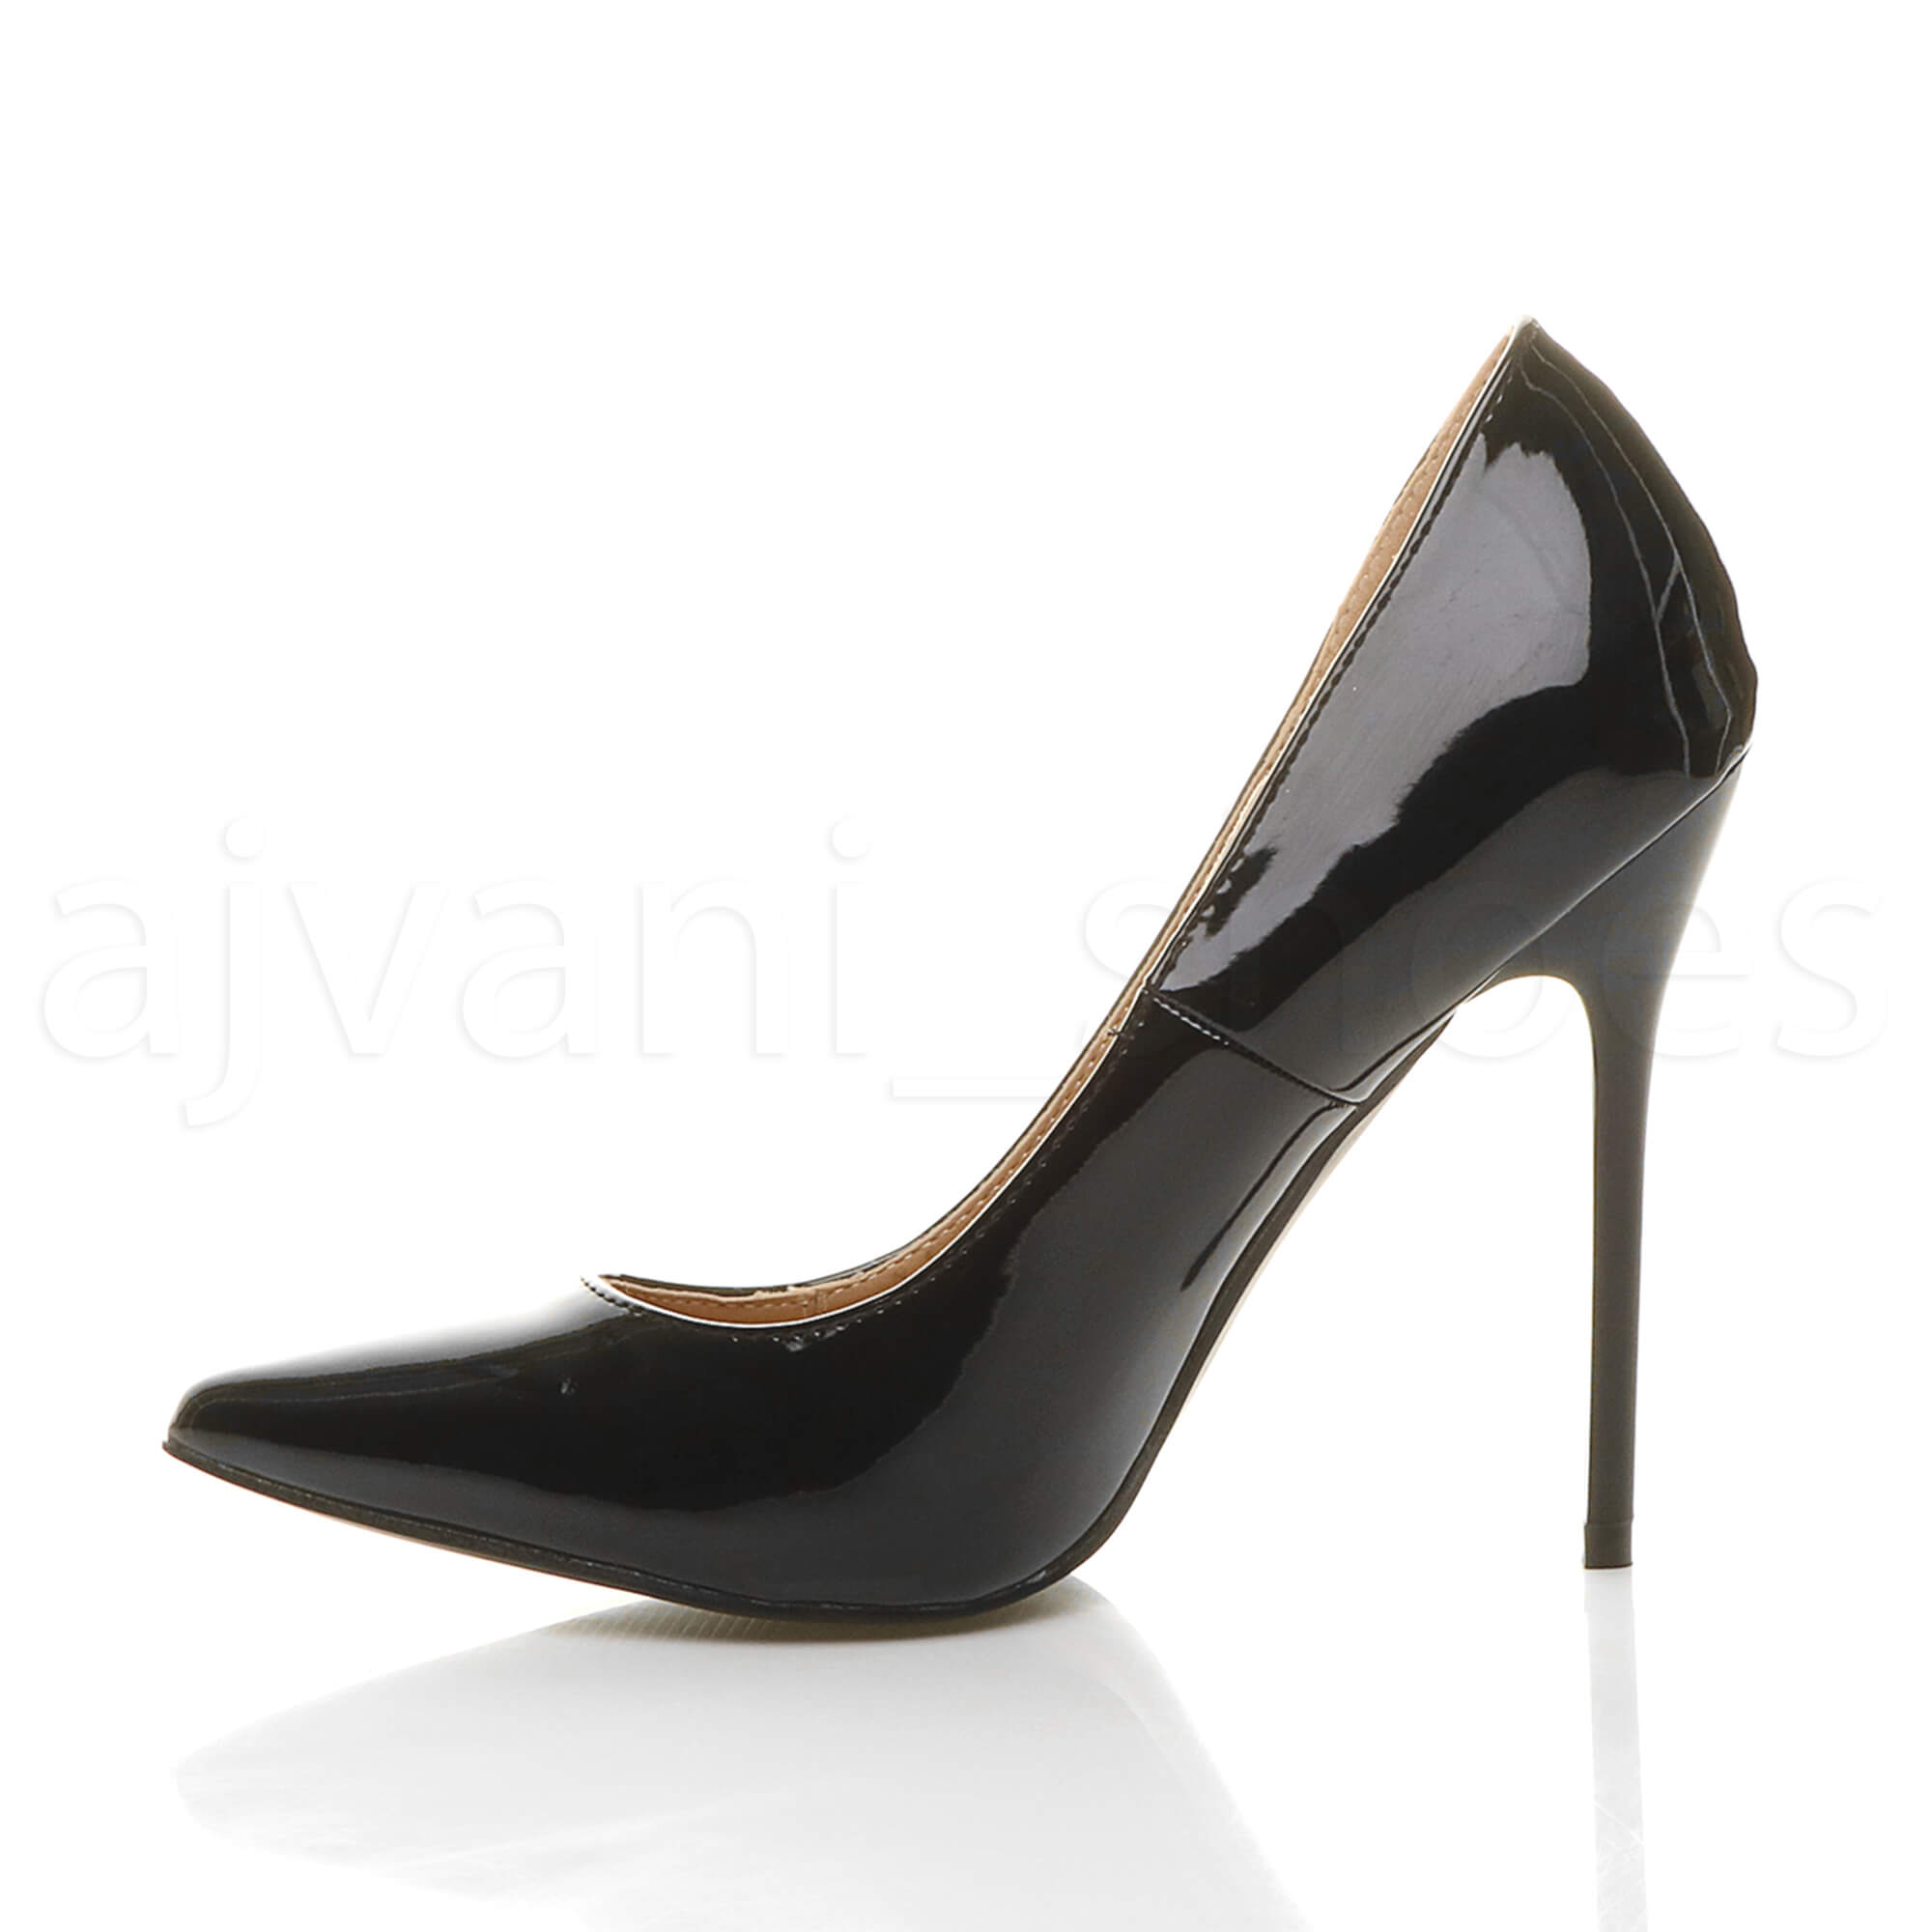 WOMENS-LADIES-HIGH-HEEL-POINTED-CONTRAST-COURT-SMART-PARTY-WORK-SHOES-PUMPS-SIZE thumbnail 20